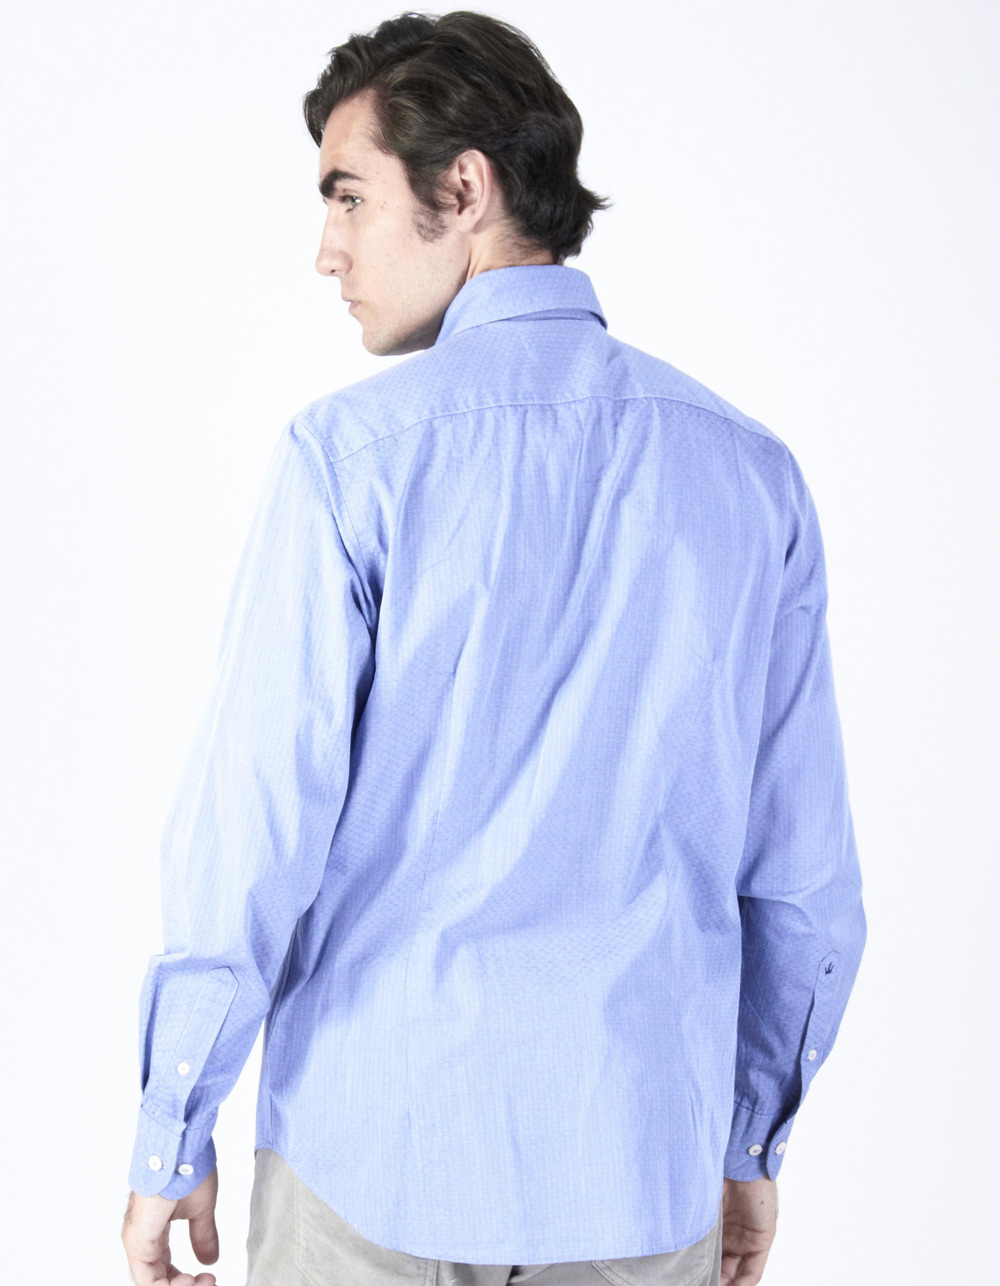 Pinstripe structure shirt - Backside